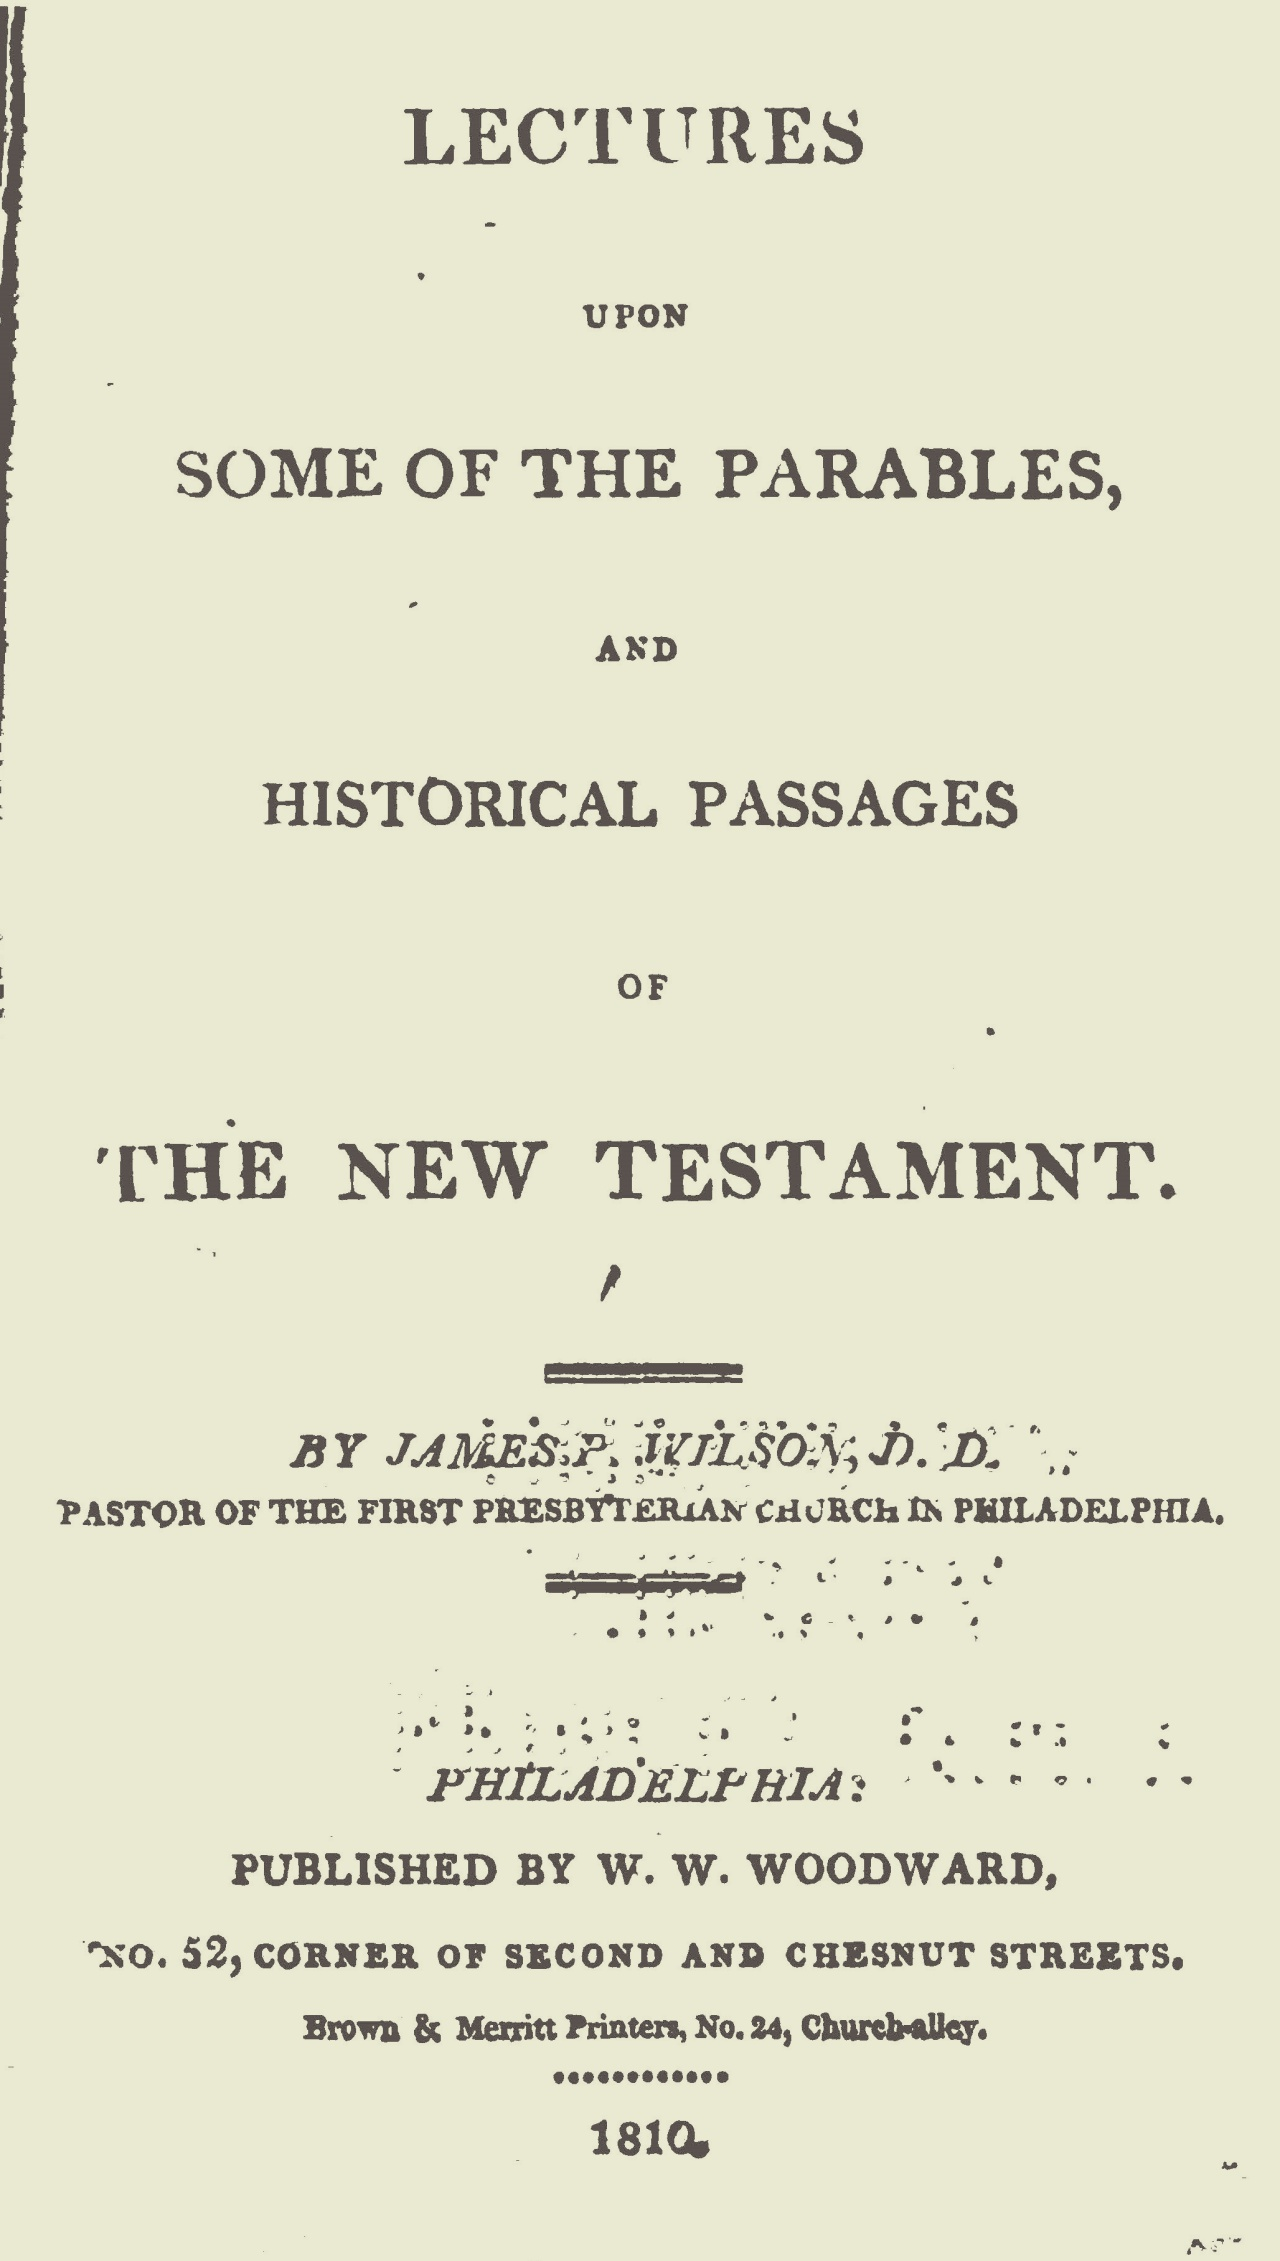 Wilson, Sr., James Patriot, Lectures Upon Some of the Parables Title Page.jpg